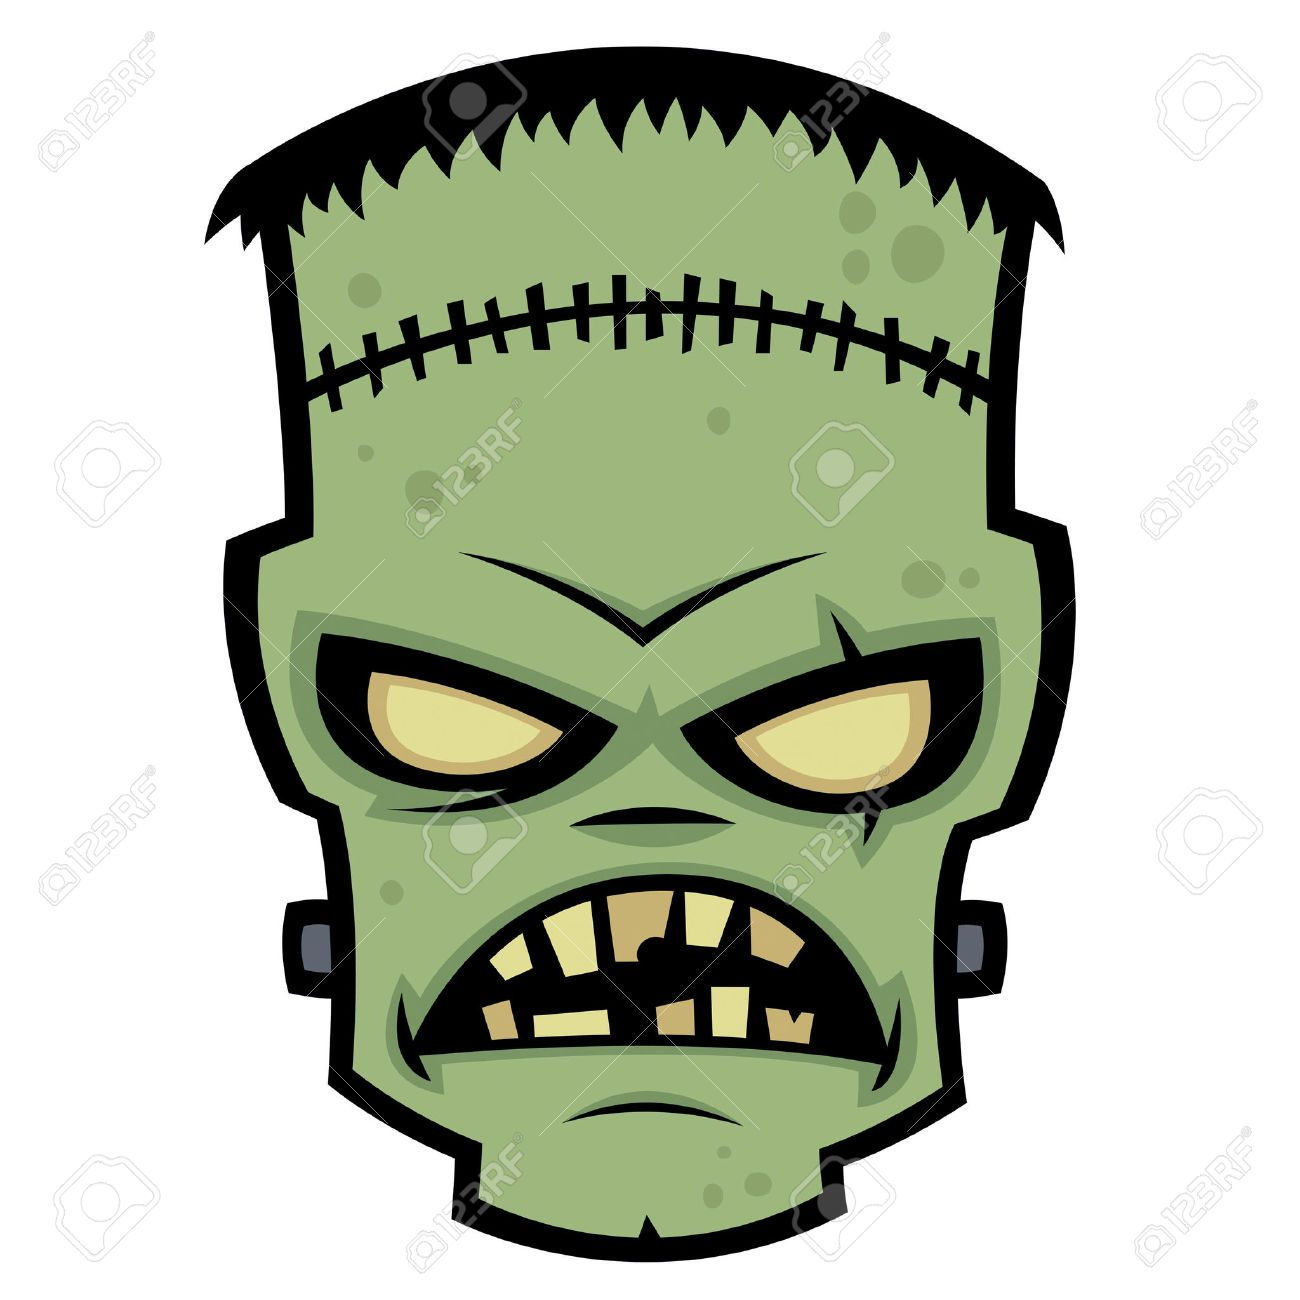 Free clipart frankenstein monster vector transparent stock Frankenstein Stock Vector Illustration And Royalty Free ... | Ghosts ... vector transparent stock